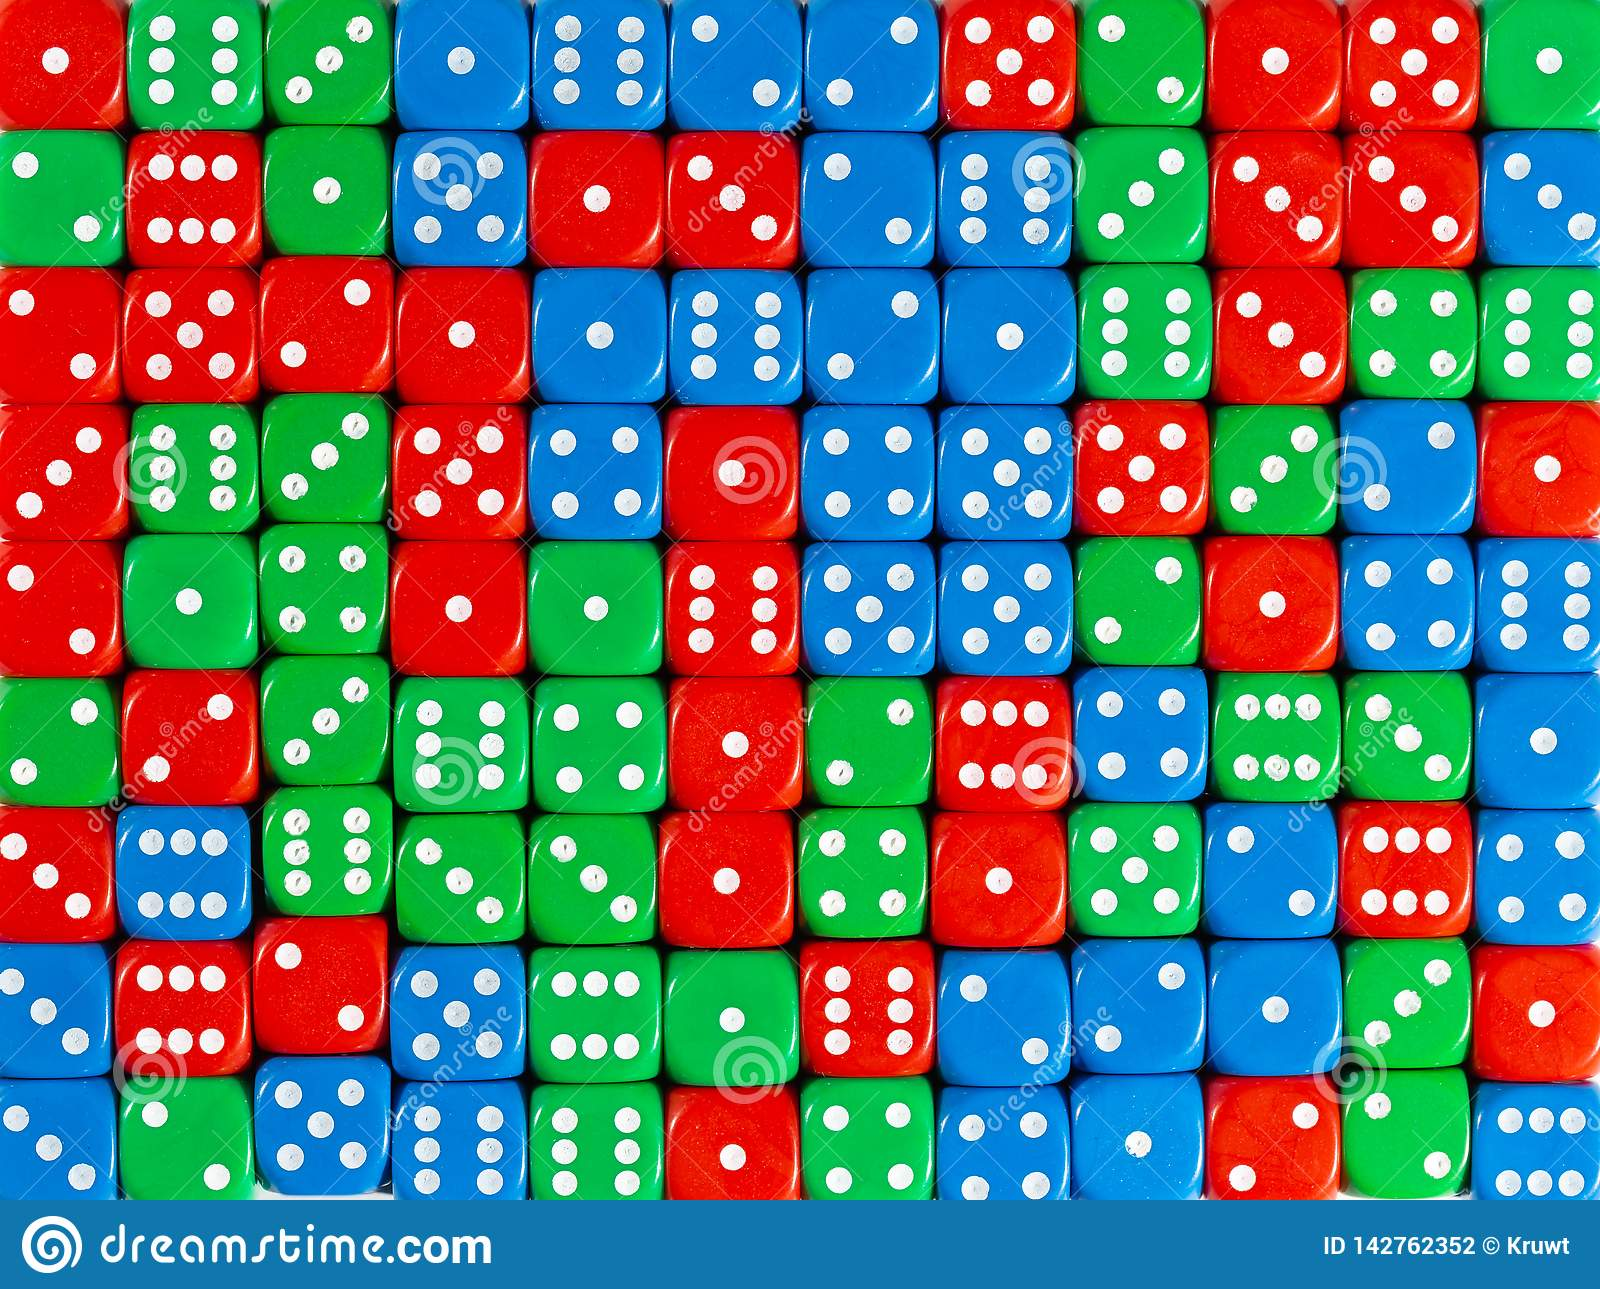 Background pattern of random ordered red, green and blue dices